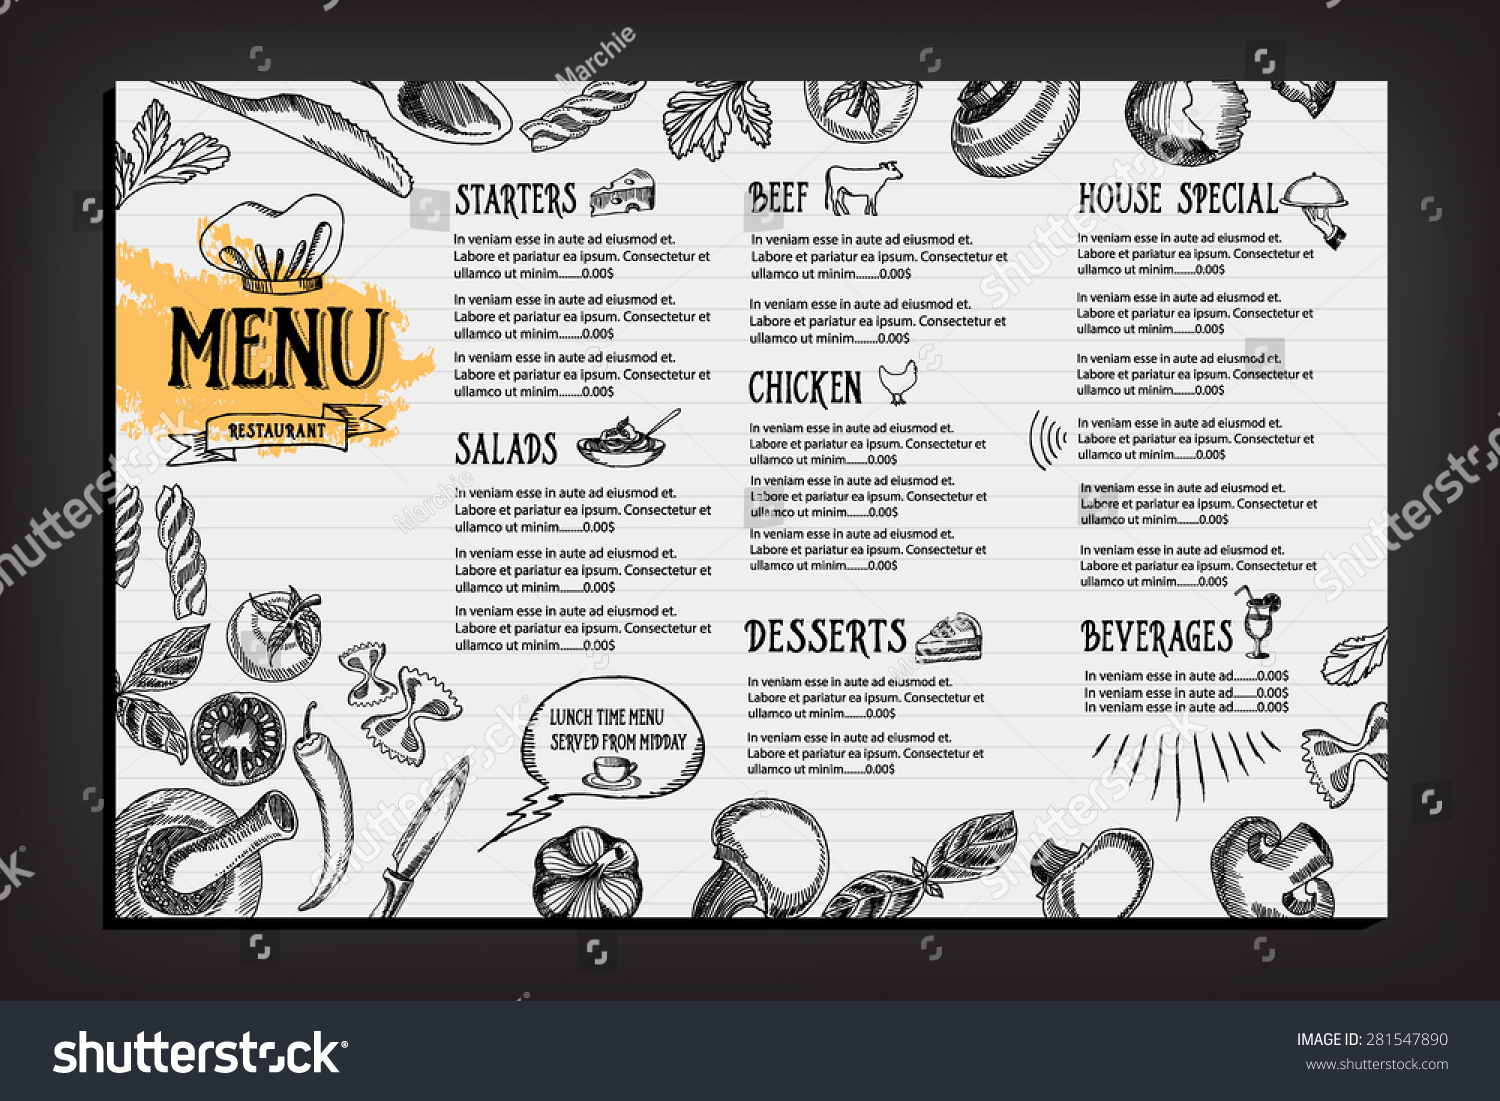 Cafe menu restaurant brochure food design stockvector